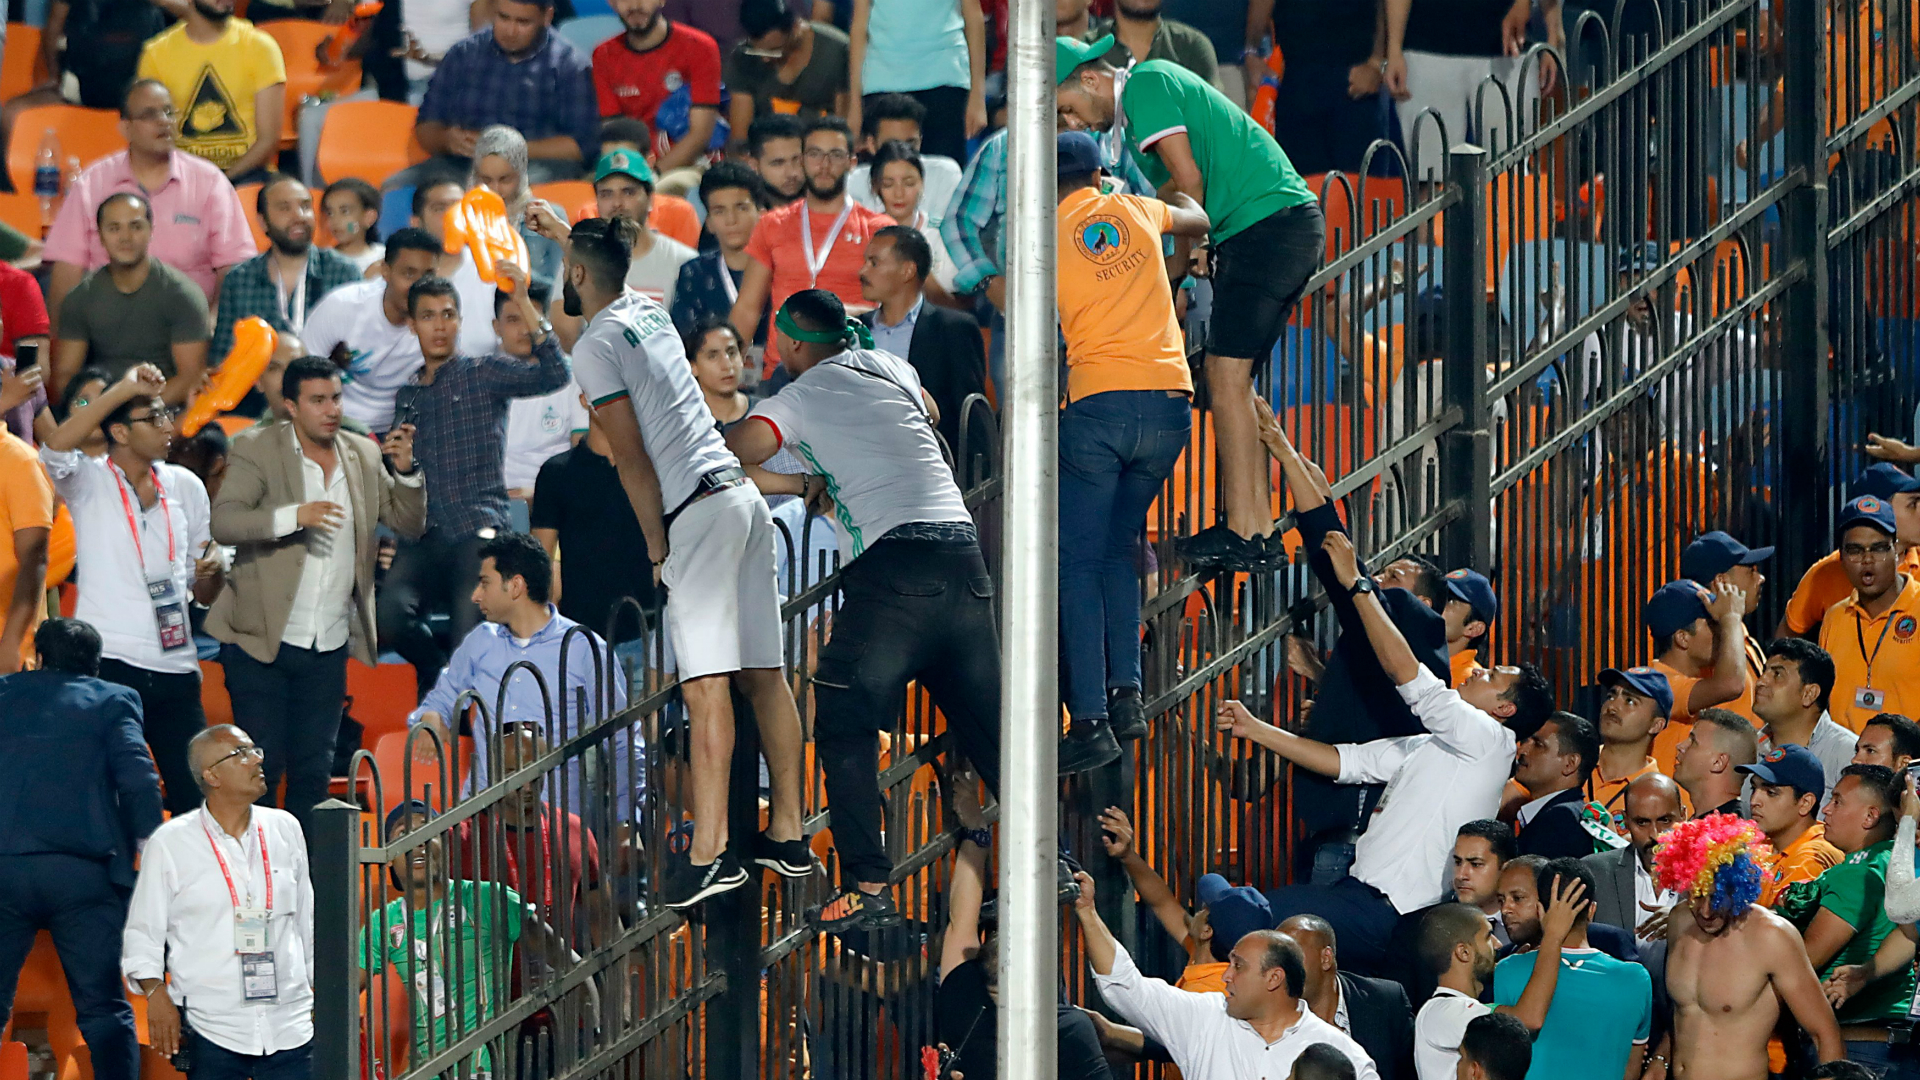 Afcon 2019: Algeria FA urges fans to behave ahead of the final against Senegal